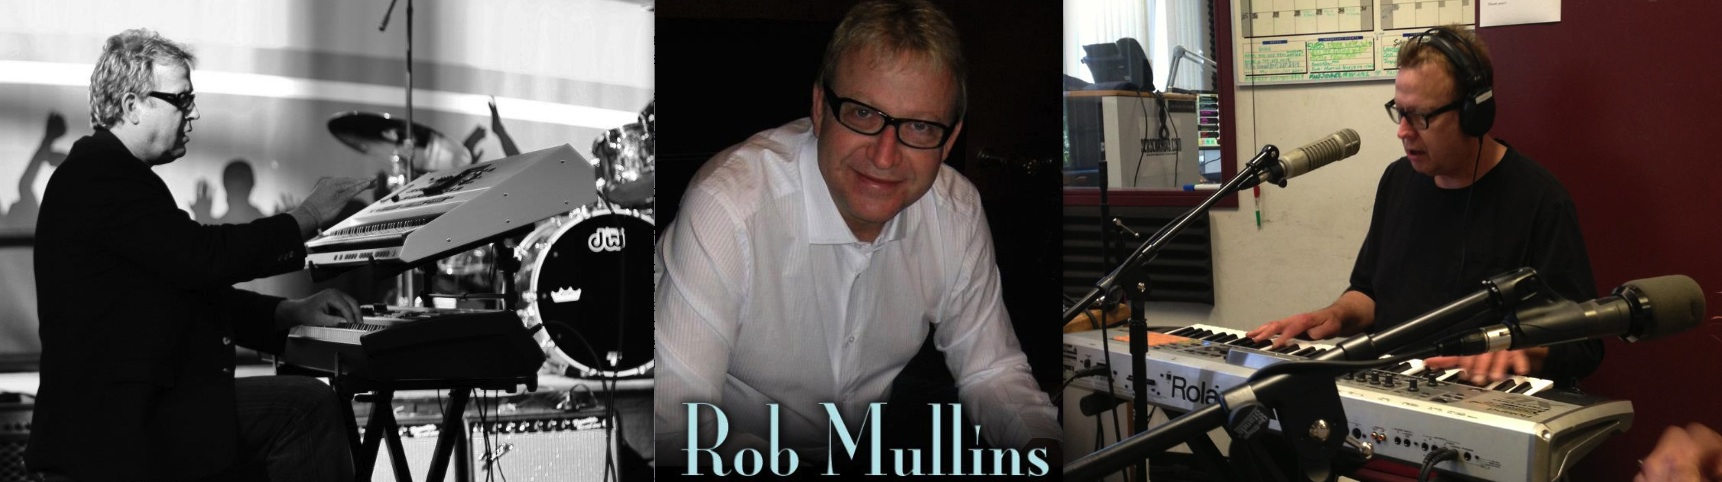 Rob Mullins performer composer producer